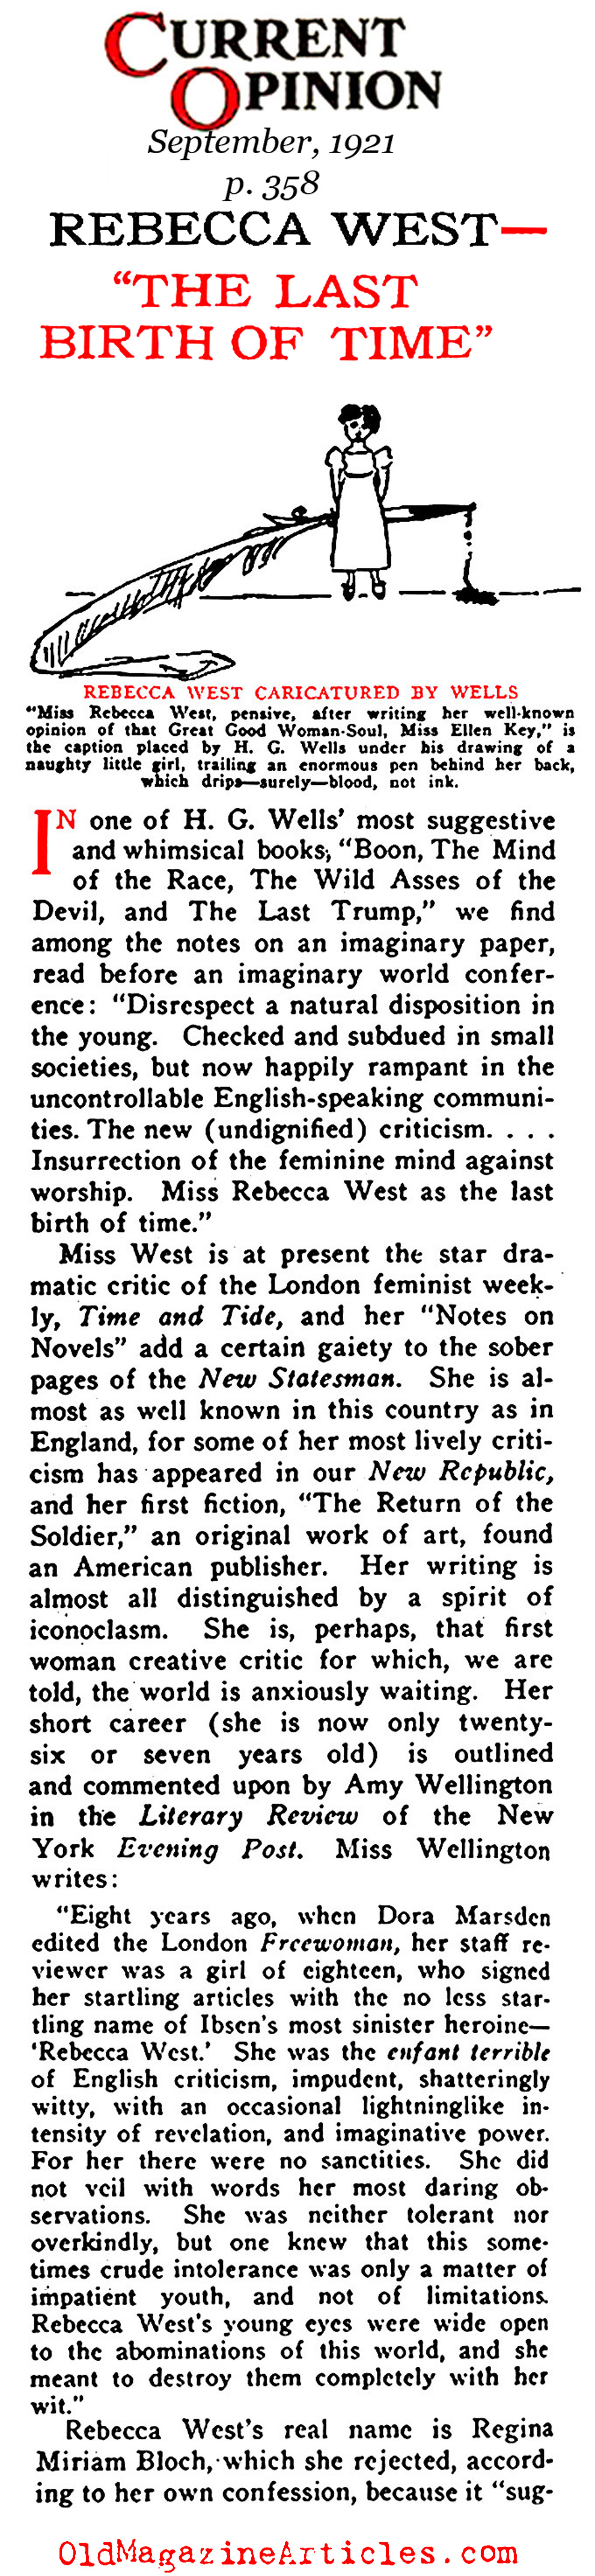 Rebecca West: The Last Birth of Time (Current Opinion, 1921)